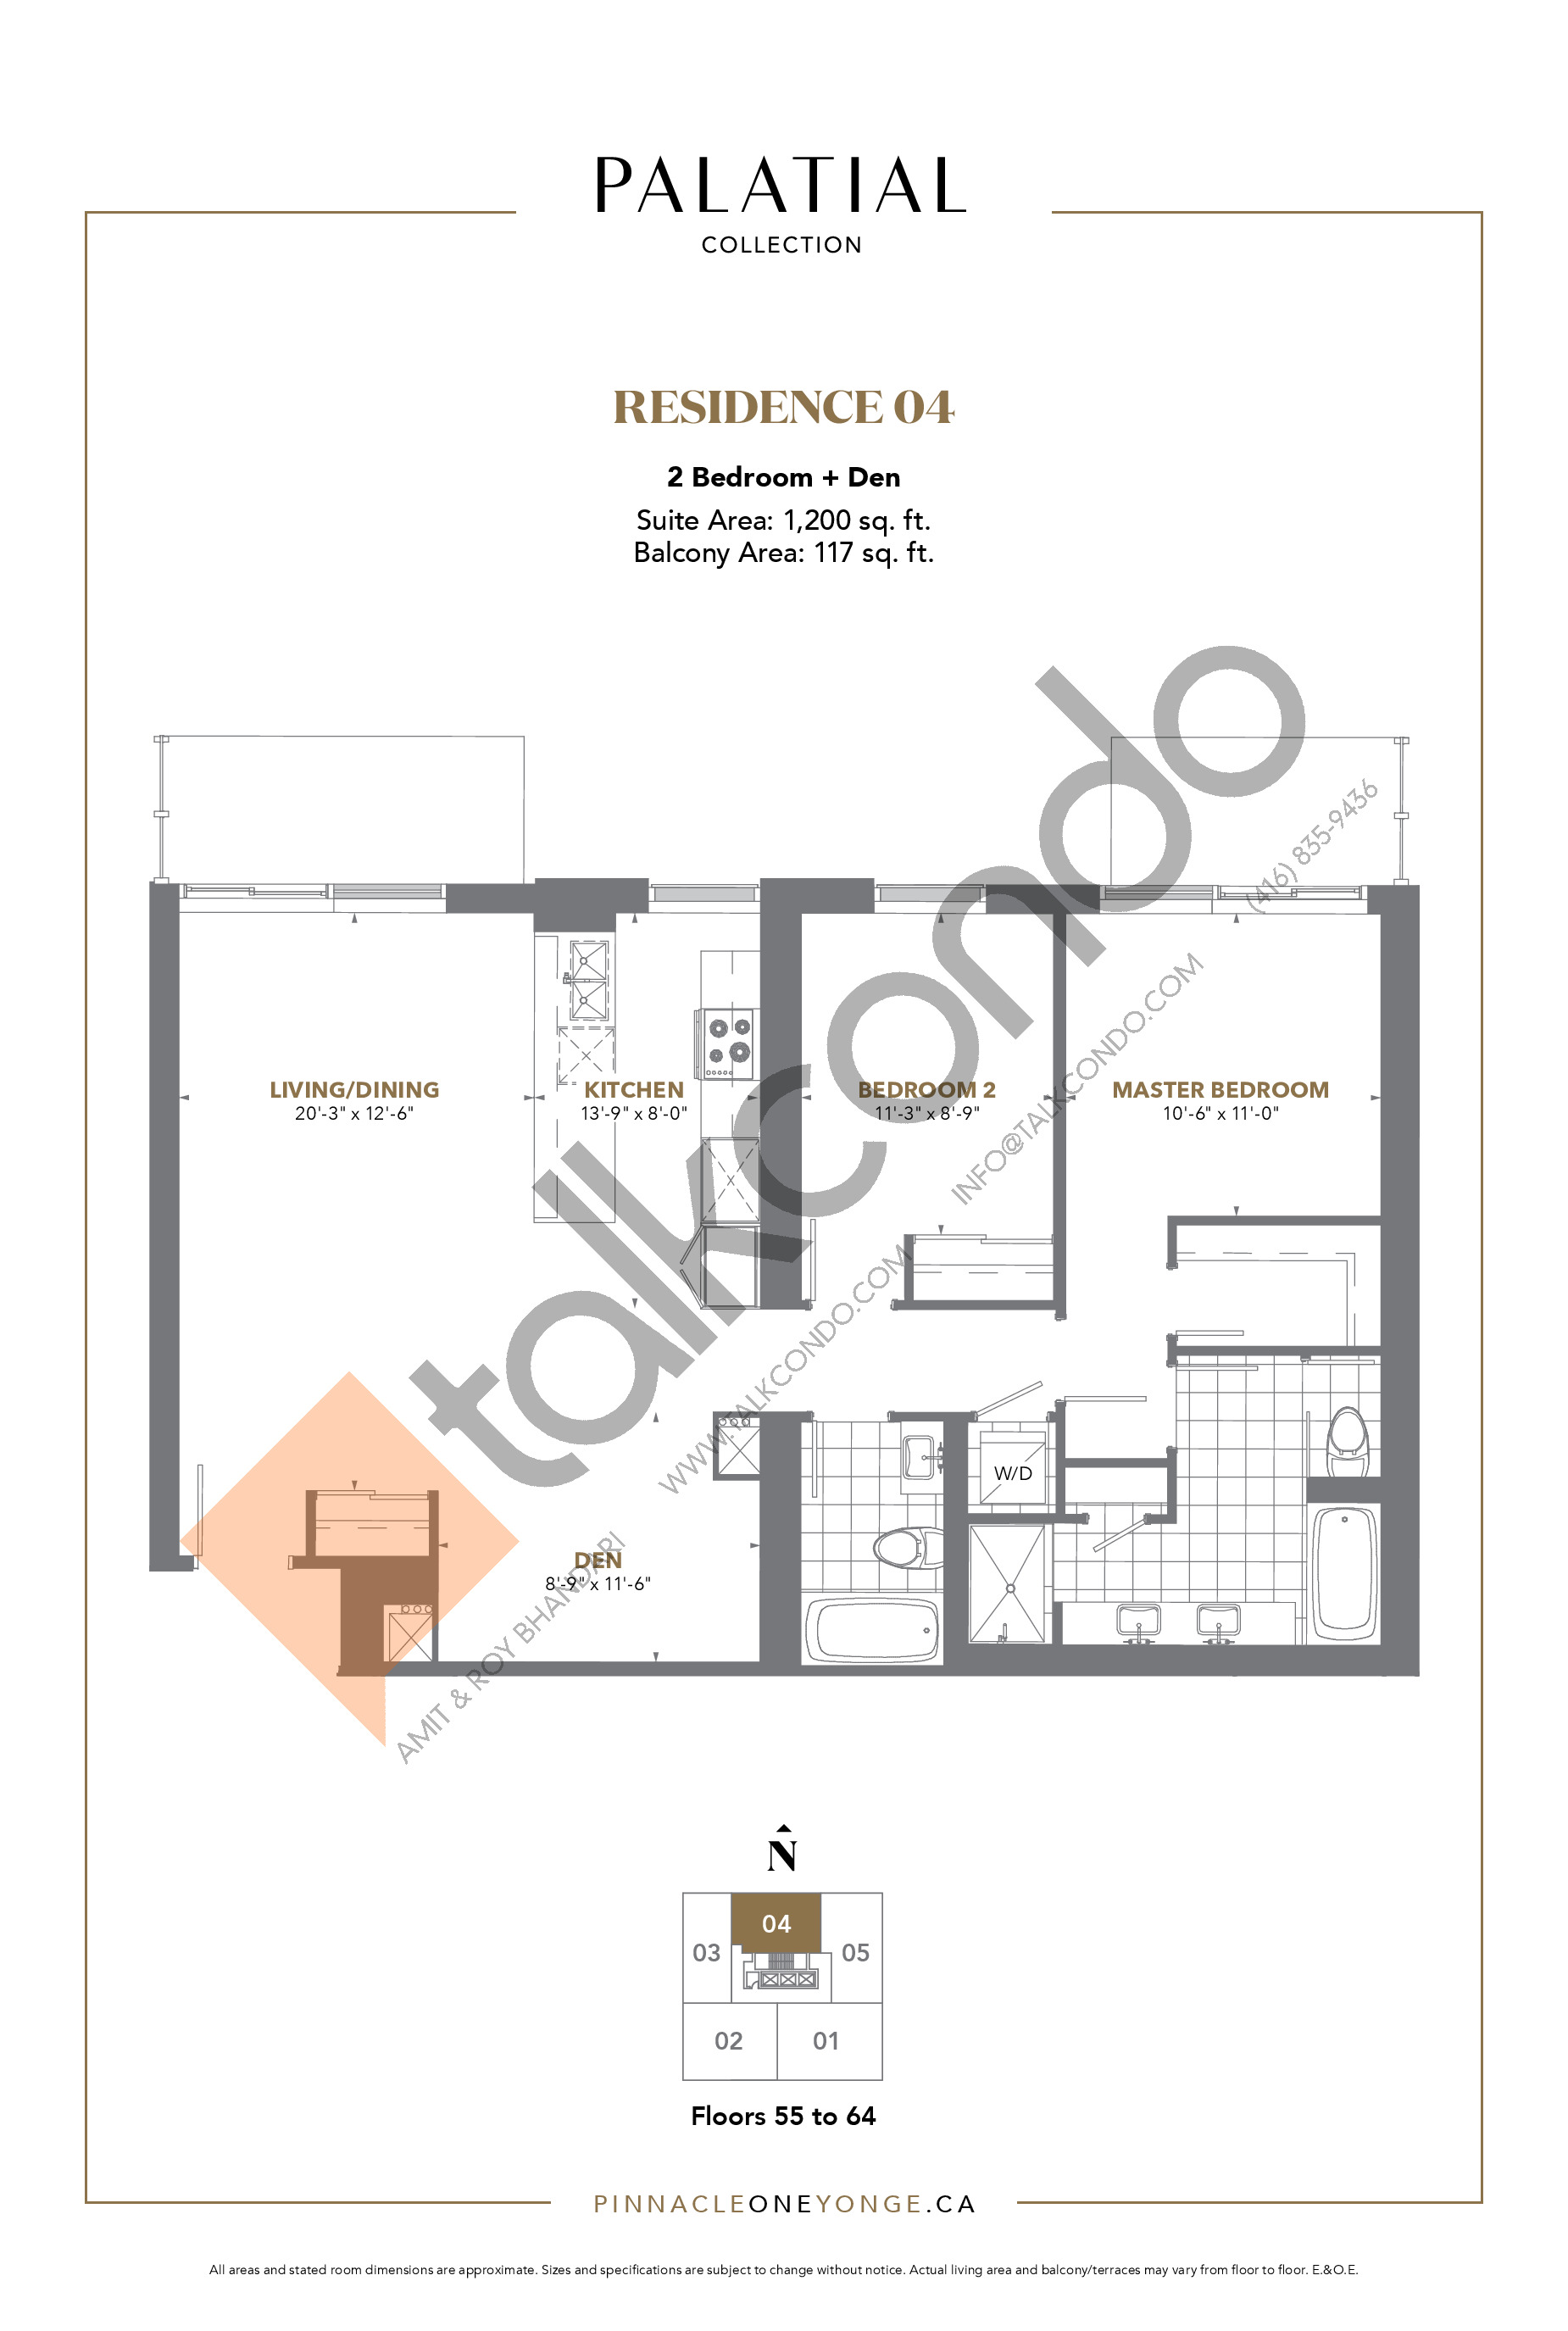 Palatial Collection - Residence 04 Floor Plan at The Prestige Condos at Pinnacle One Yonge - 1200 sq.ft